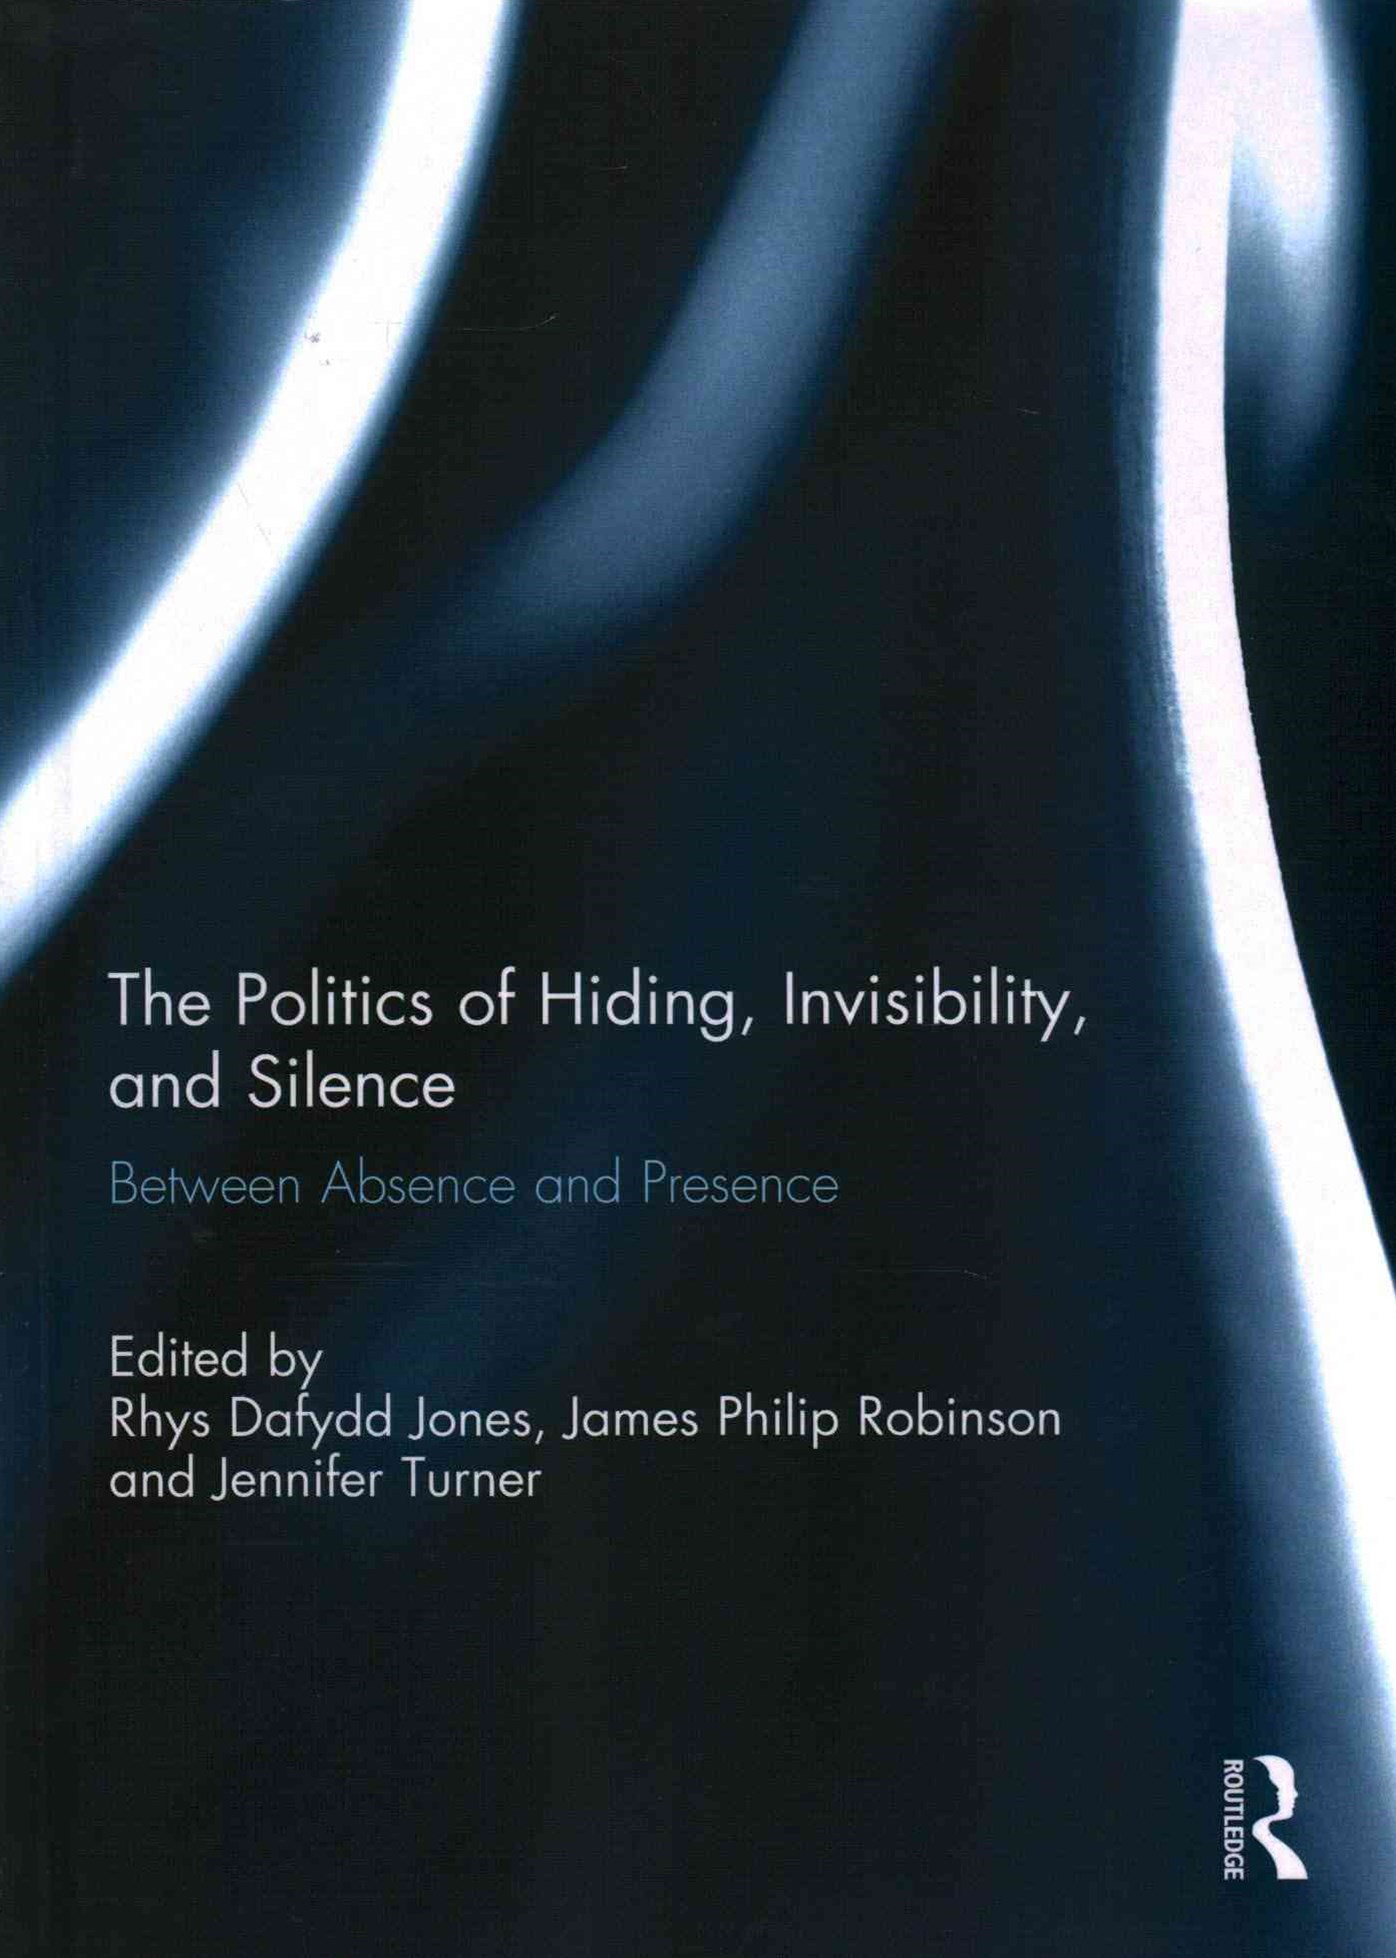 Politics of Hiding, Invisibility, and Silence